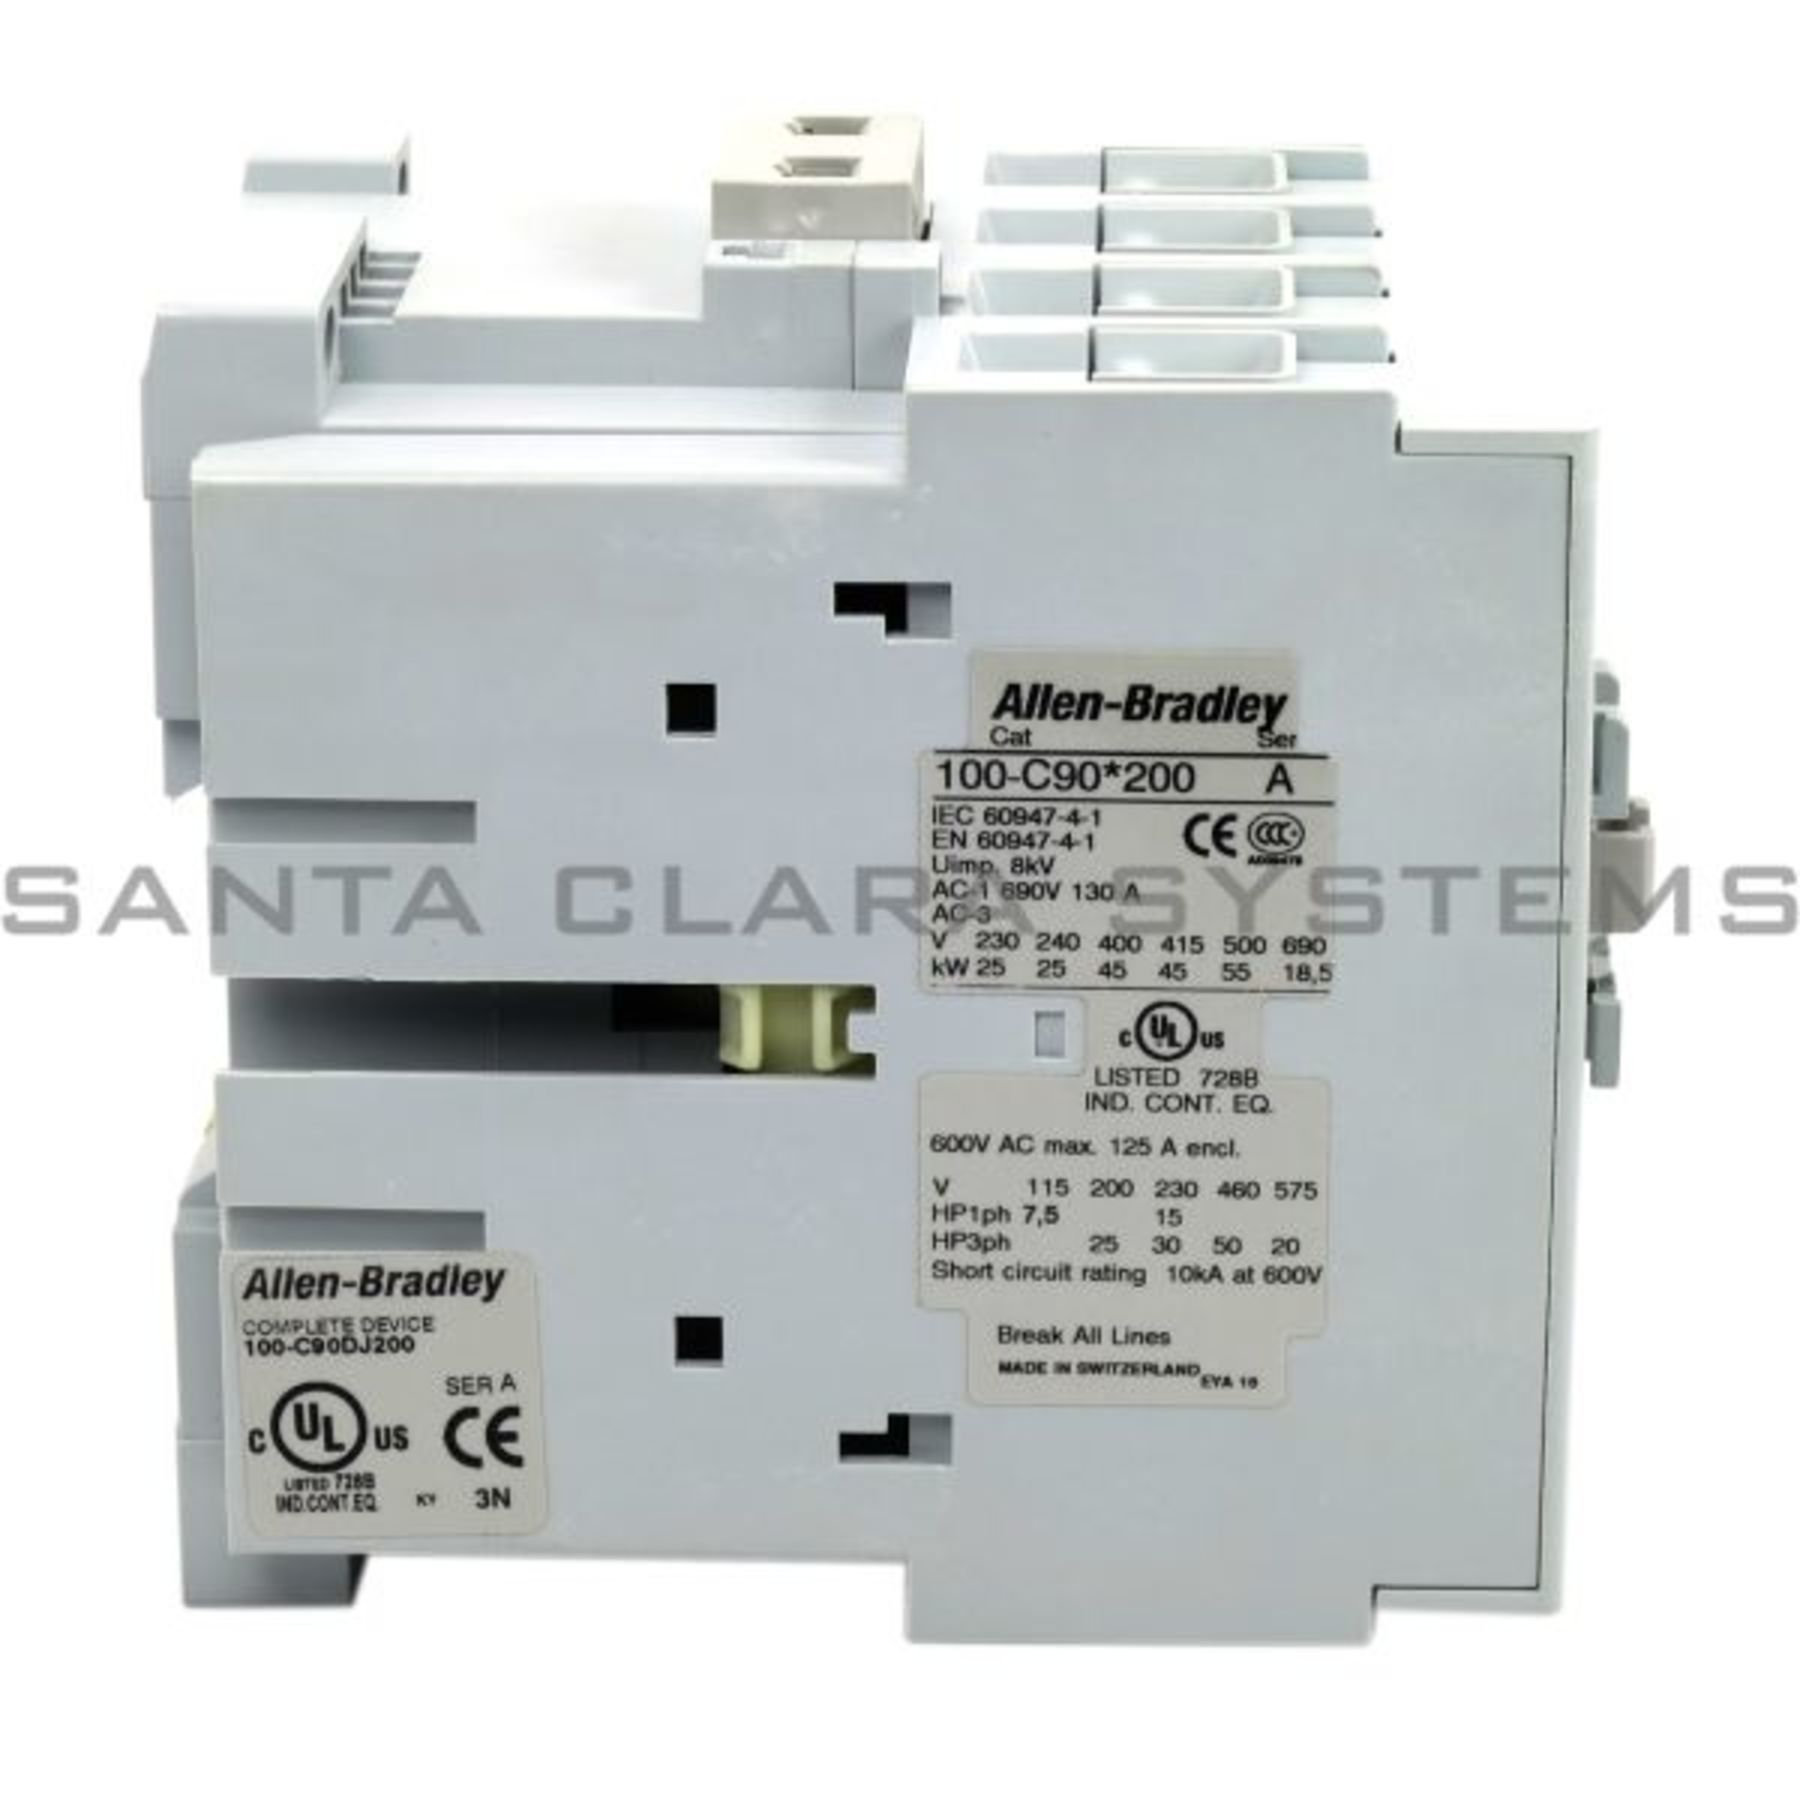 100 C90dj200 Allen Bradley In Stock And Ready To Ship Santa Clara Typical Circuit Breaker Nameplate Iec 60947 Is The Contactor 85a Mcs C 1 Phase Product